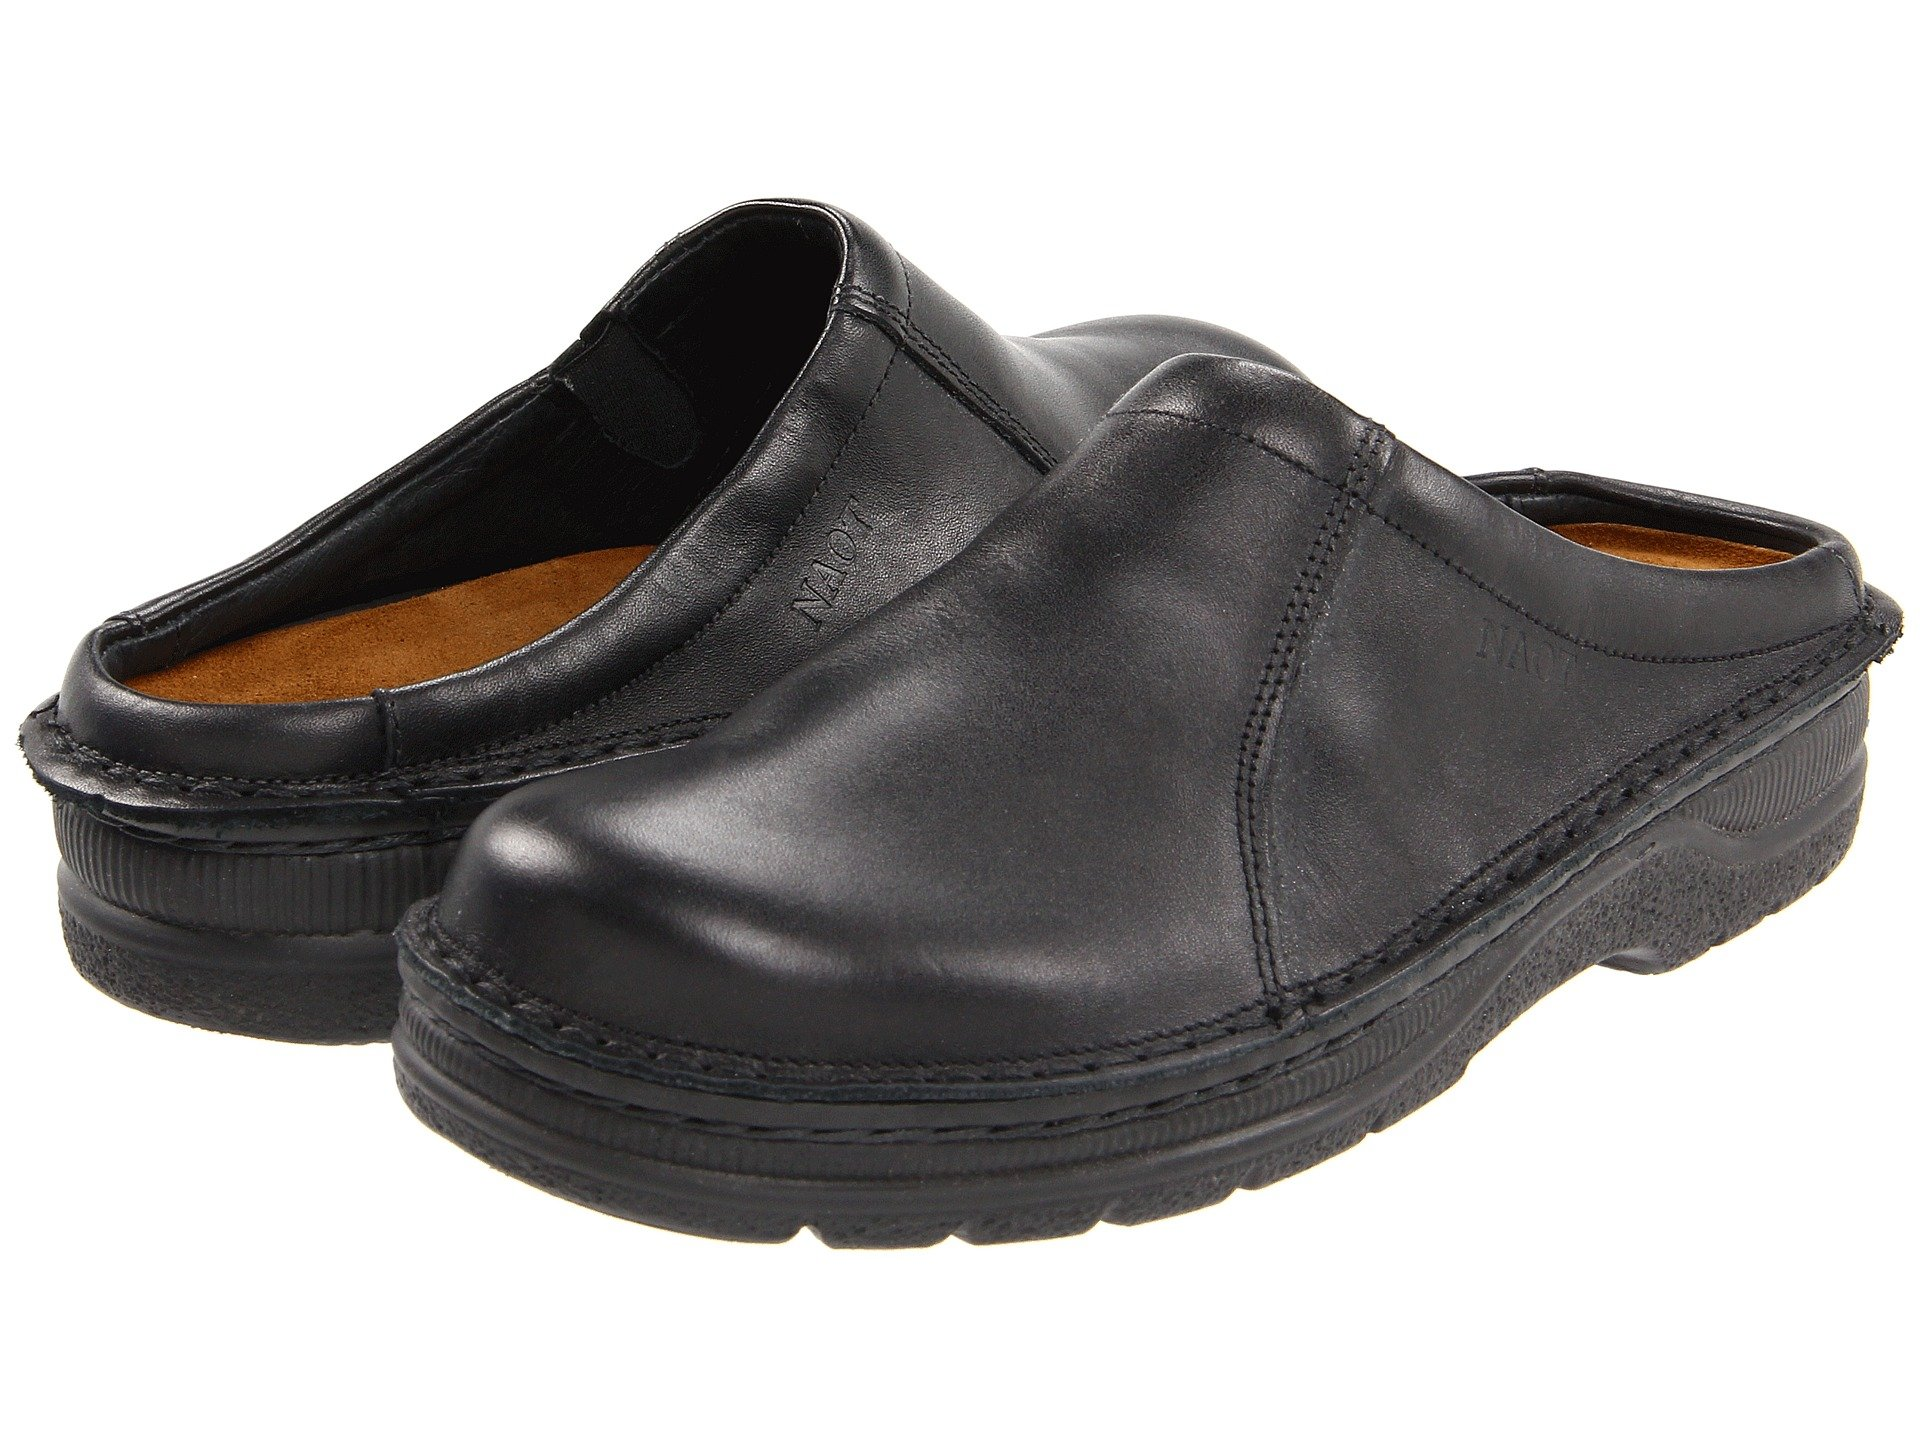 Naot Shoes Men Shipped Free At Zappos D Island Moccasine Slip On Lacoste Suede Black Bjorn